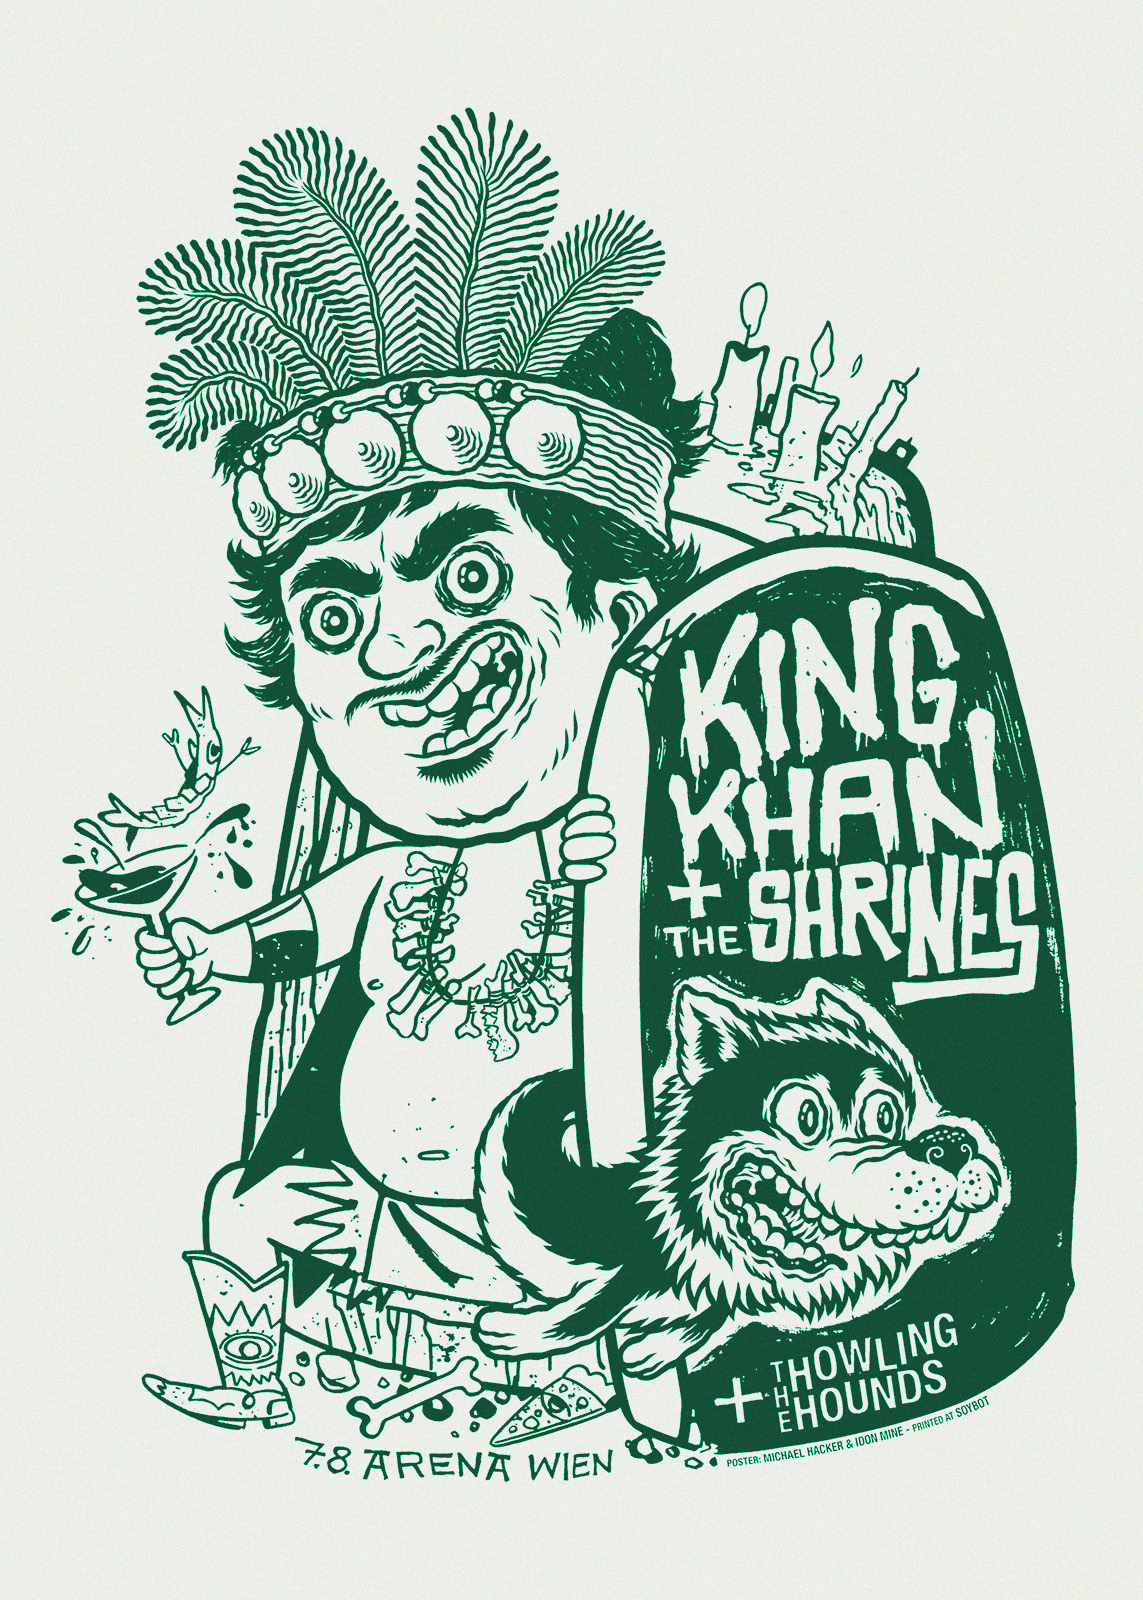 King Khan and the Shrines Gigposter by Michael Hacker and Idon Mine